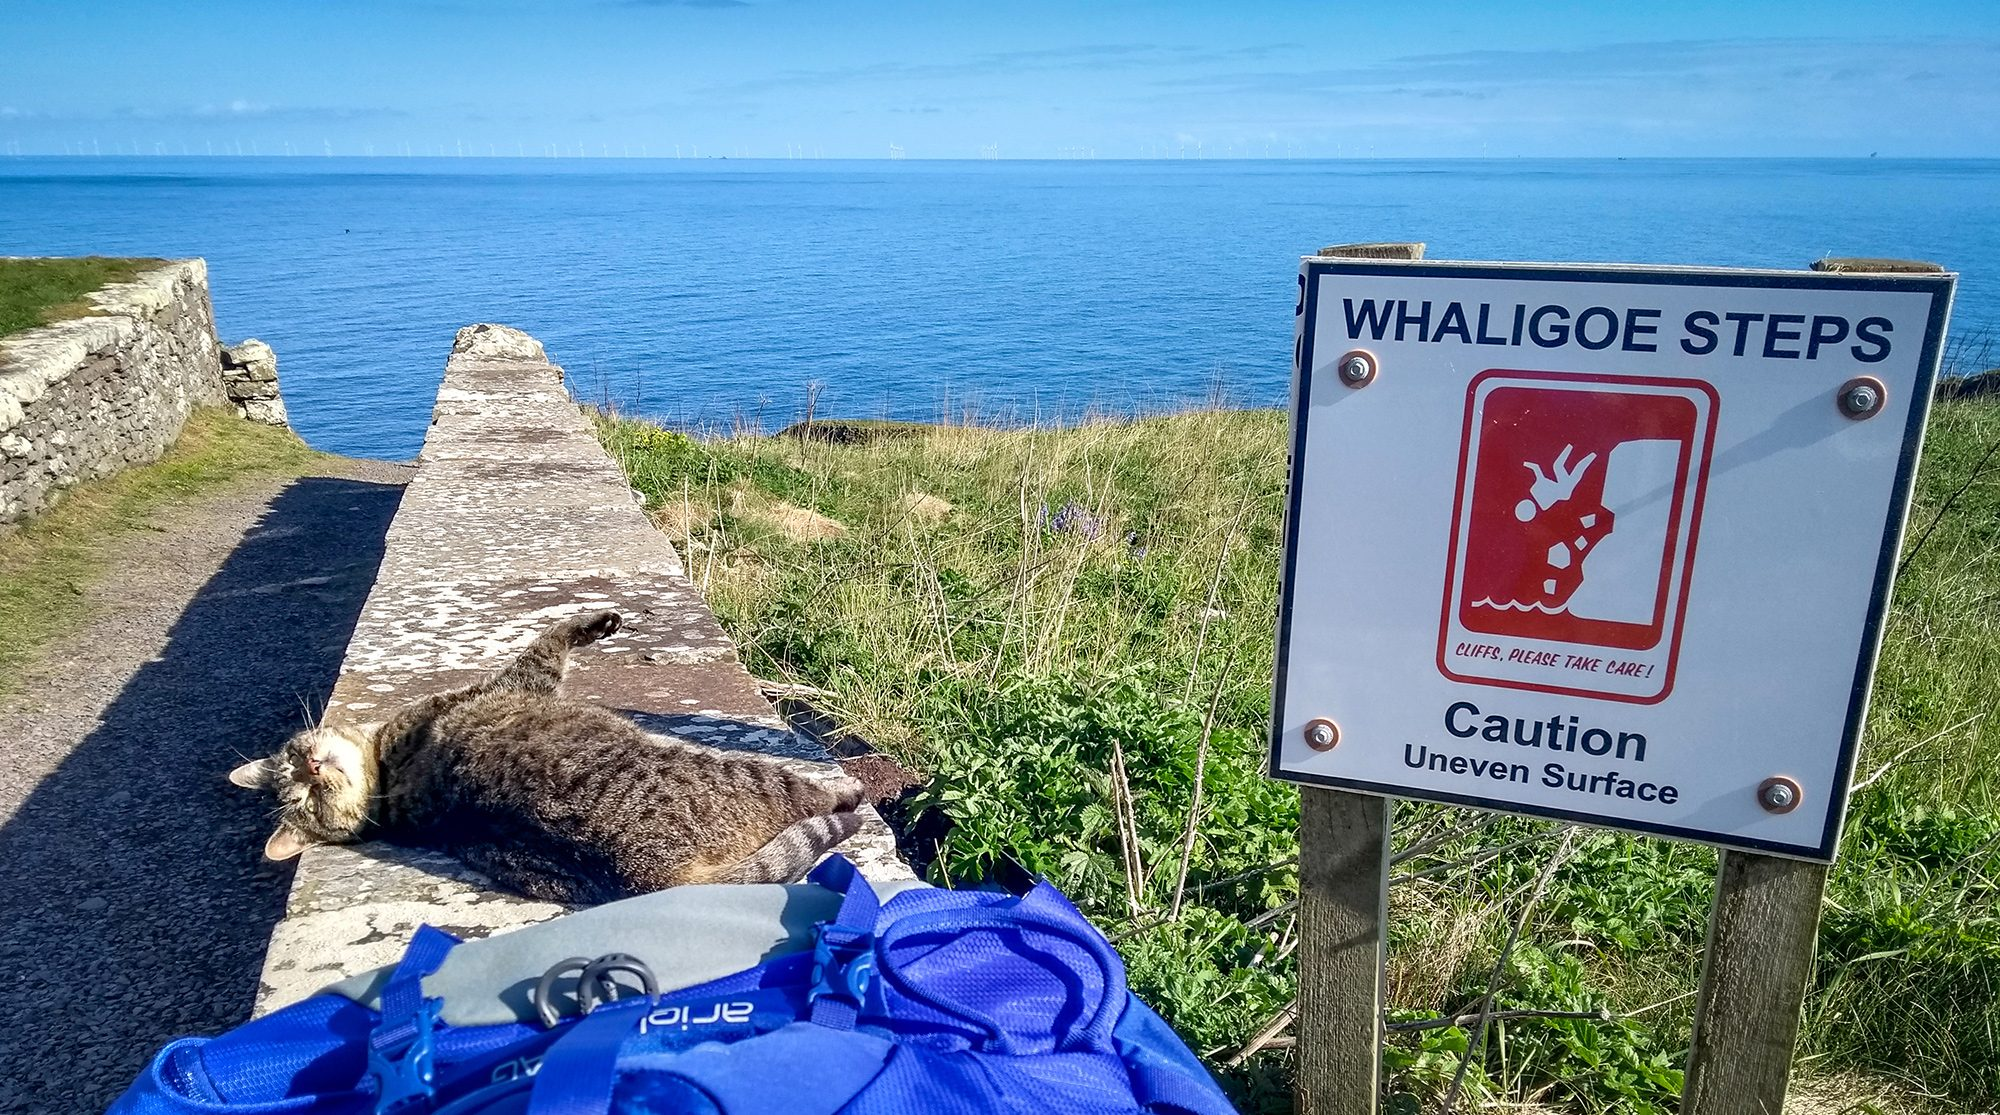 Whaligoe Steps caution Schild